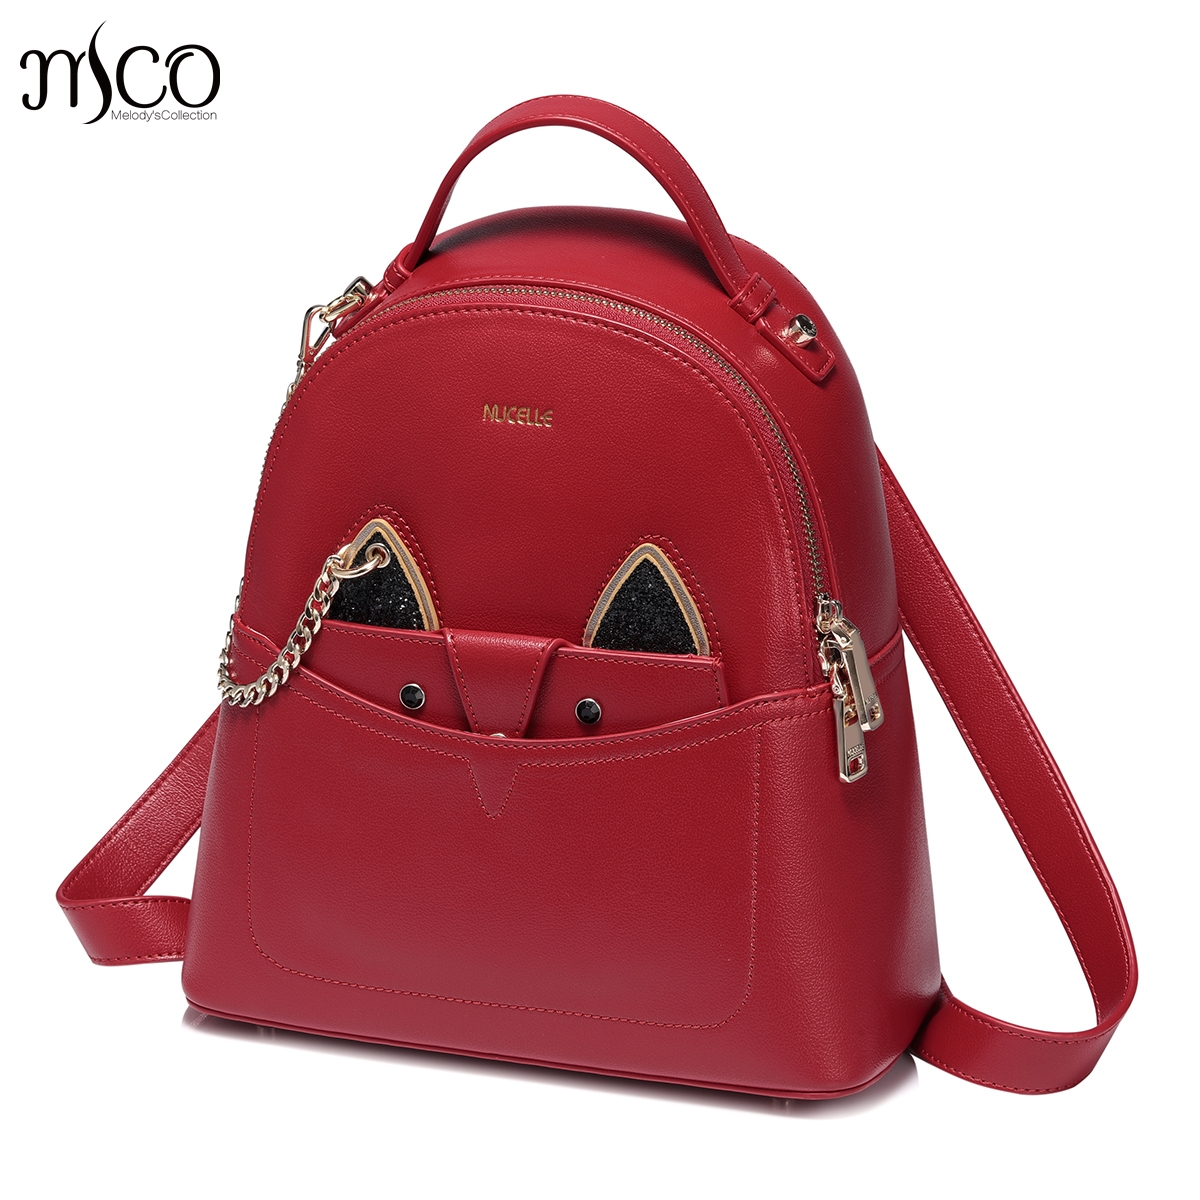 Nucelle Women Cat Backpack High Quality PU Leather Mochila Escolar School Bags For Teenagers Girls hidden Purse Backpacks set fashion women backpack high quality pu leather mochila escolar school bags for teenagers girls top handle backpacks